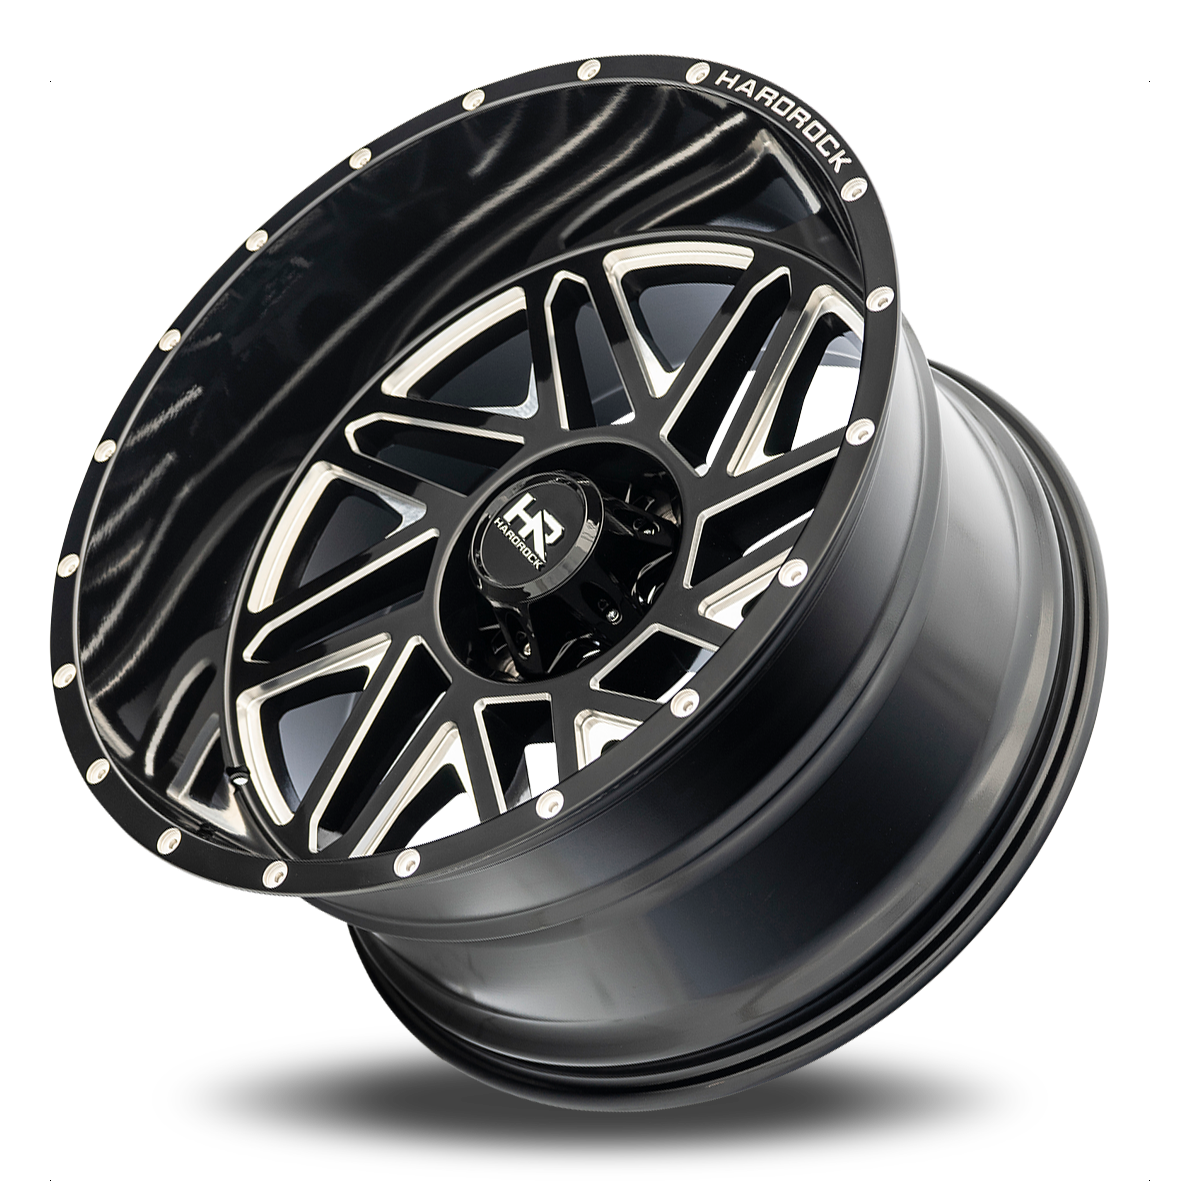 Hardrock H501 Bones Xposed Wheel in Gloss Black with Milling - 22x12